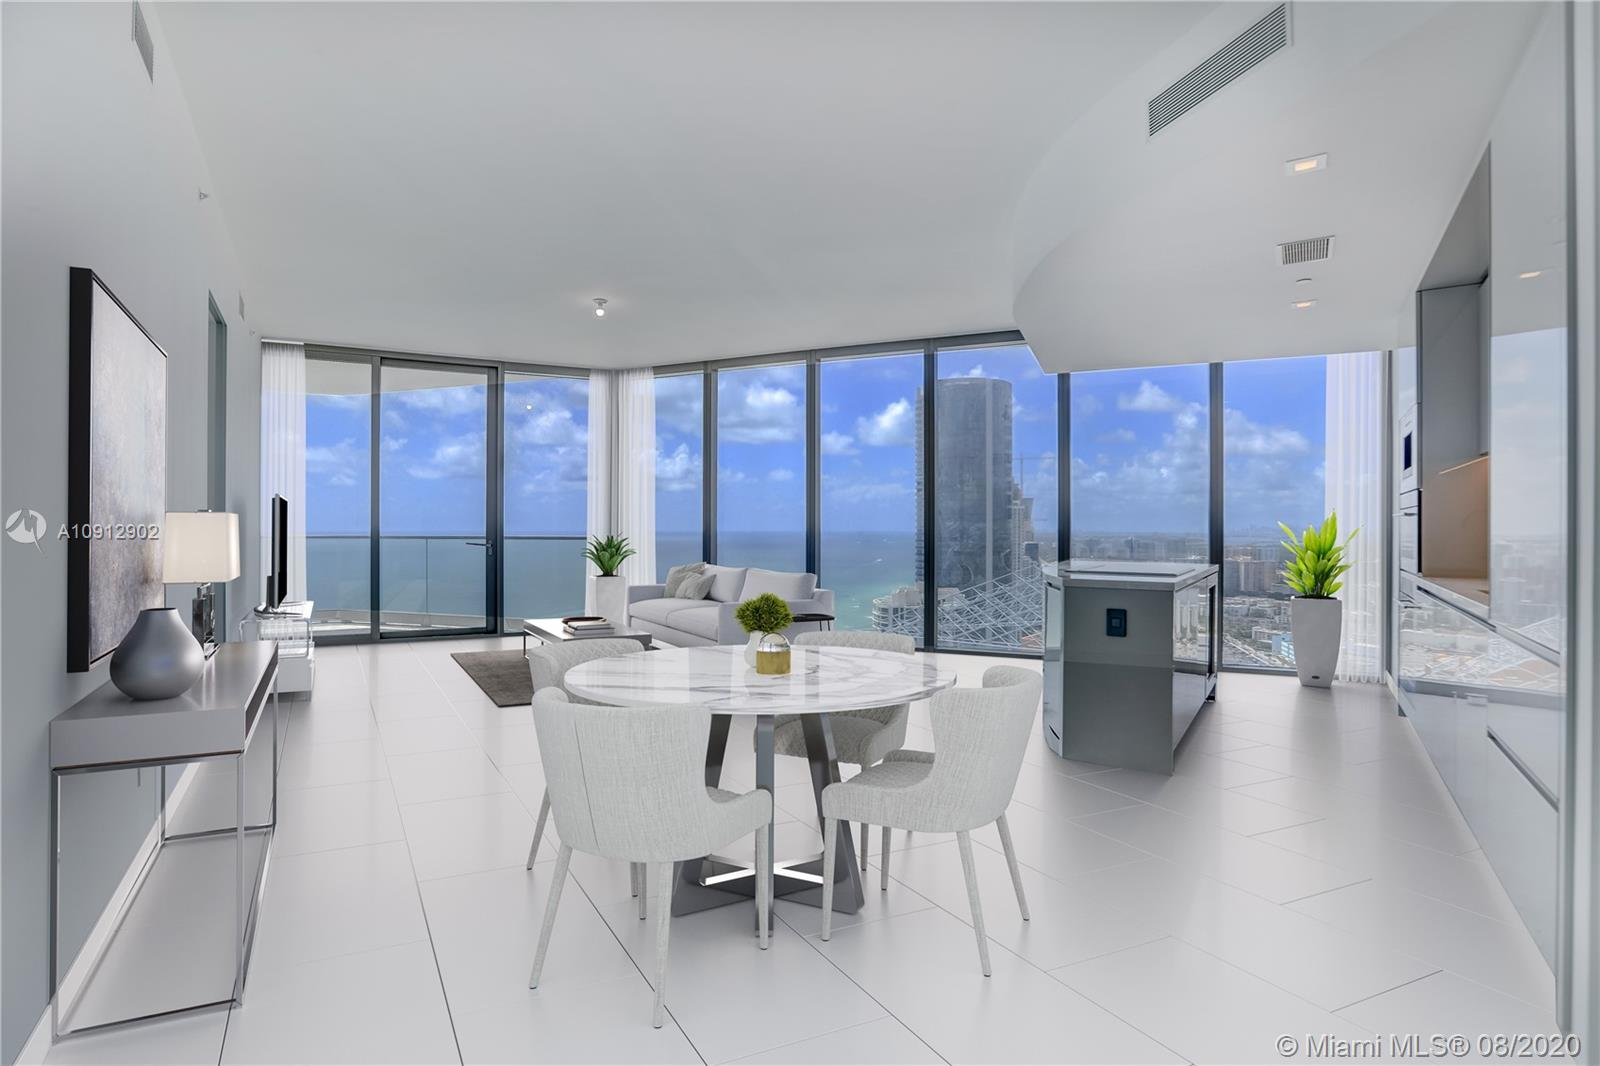 Brand New Residences By Armani Oceanfront unit clearing south neighboring building! 2 bedroom, 2.5 bathroom + den with a total of 2,331 SQ FT. Residence features floor to ceiling windows, volume ceilings, split floor plan, 2 large balconies, summer kitchen. Unobstructed views of the Atlantic Ocean and Intracoastal. Unparalleled amenities and 5 star service includes Oceanfront Pool + Bar, Restaurant, Spa & Fitness Center, Grand Lobby and Bar Lounge, Cigar and Wine Room, Children's play area, Concierge, Security and Valet and more.